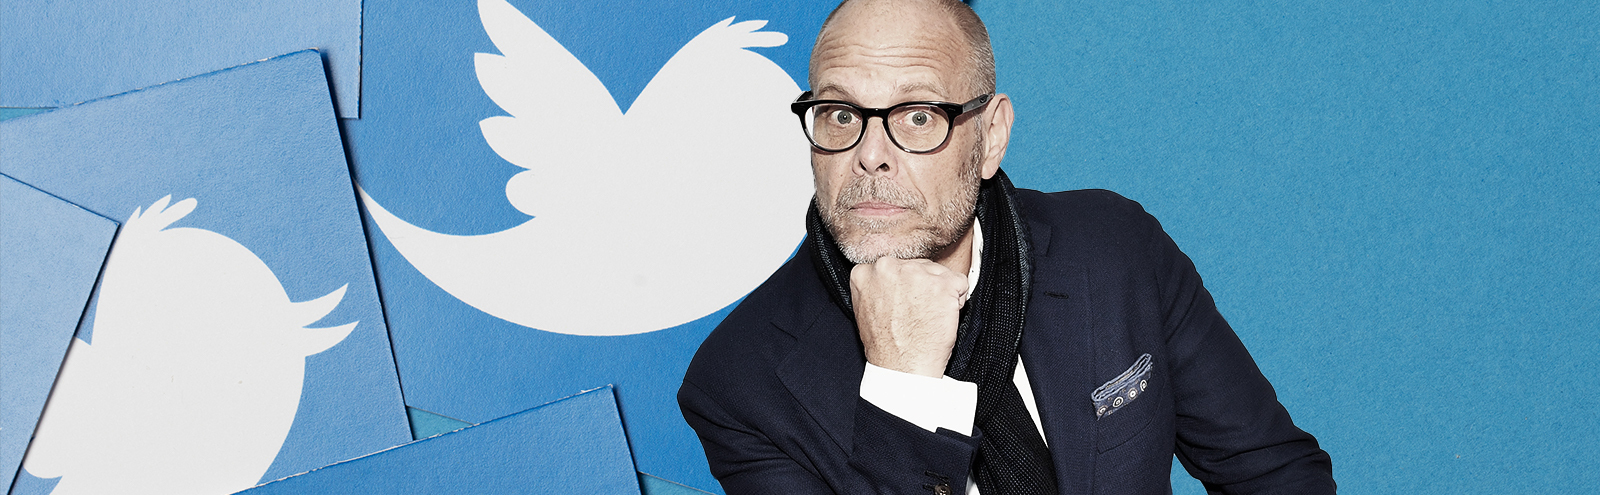 Alton Brown's Increasingly Unhinged Tweets Perfectly Capture Our Election Anxiety